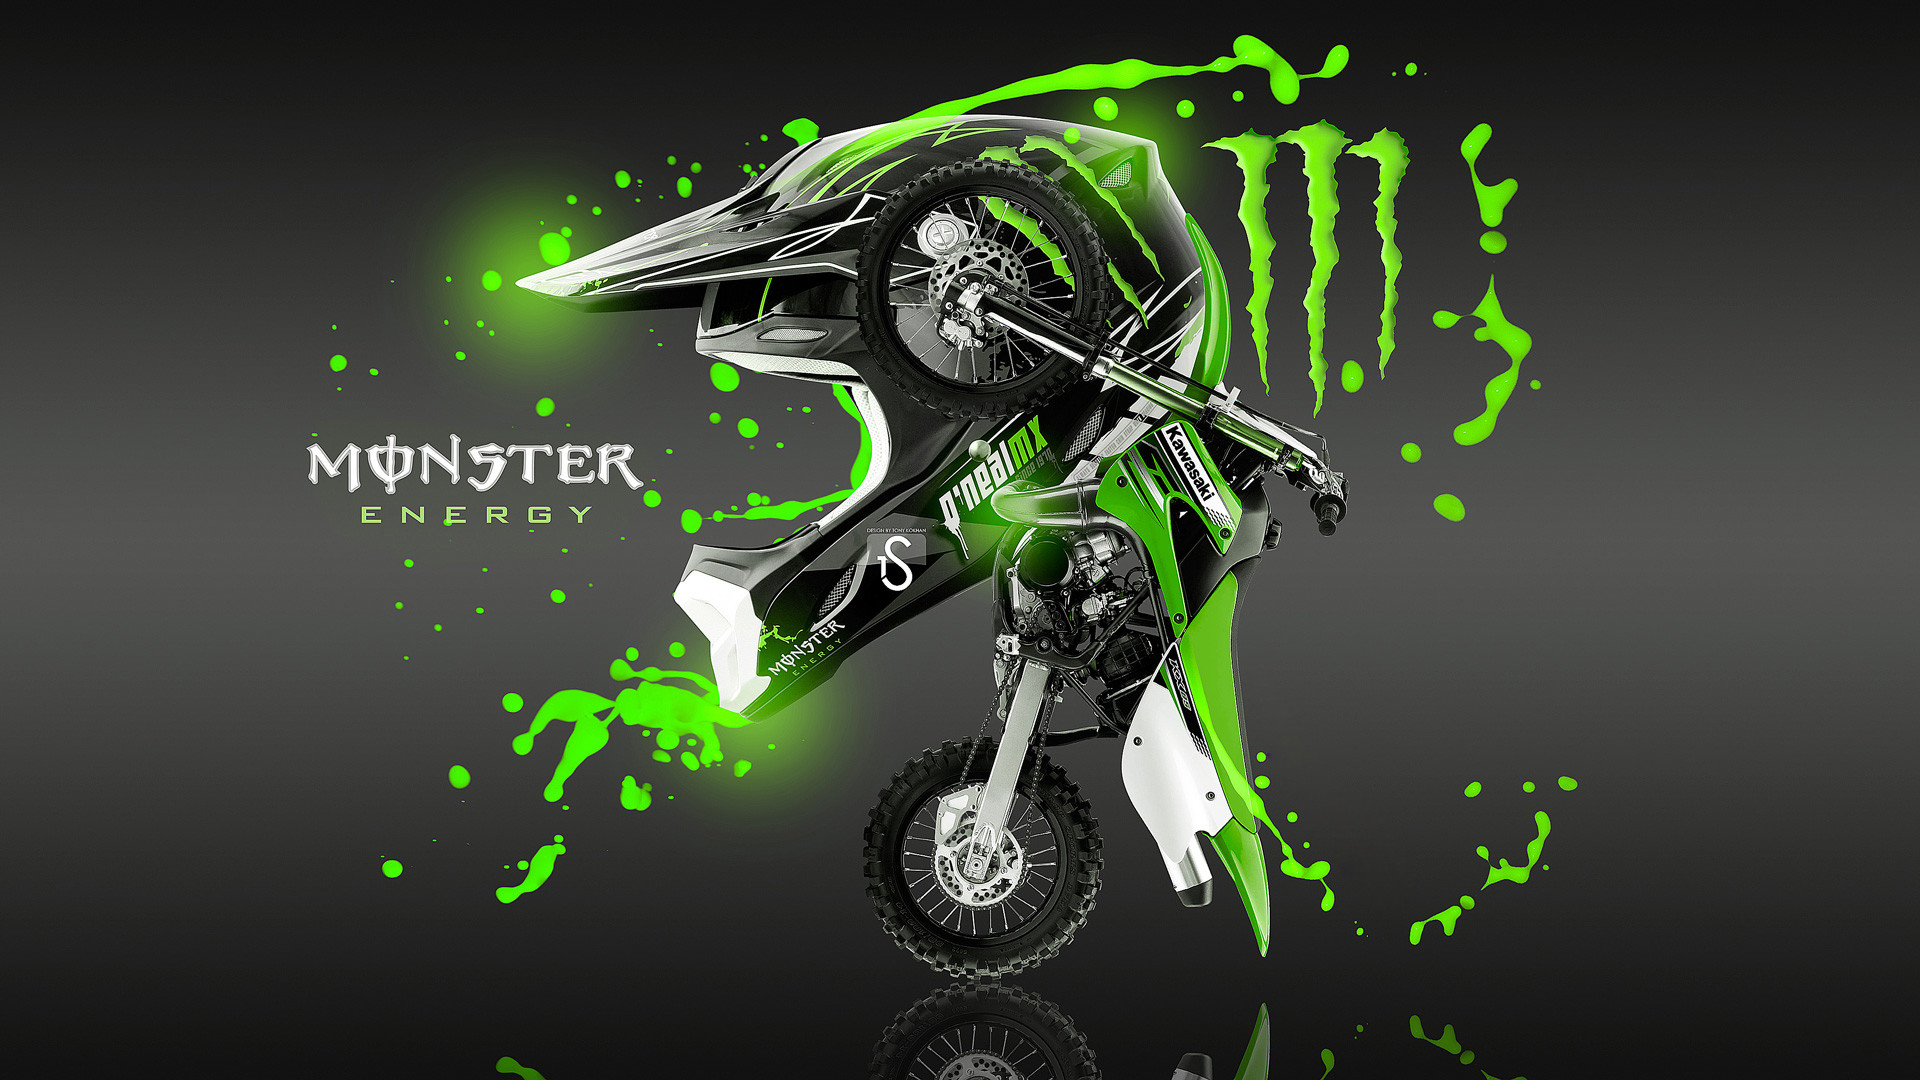 Res: 1920x1080, ... Kawasaki dirt bike monster energy wallpaper hd.